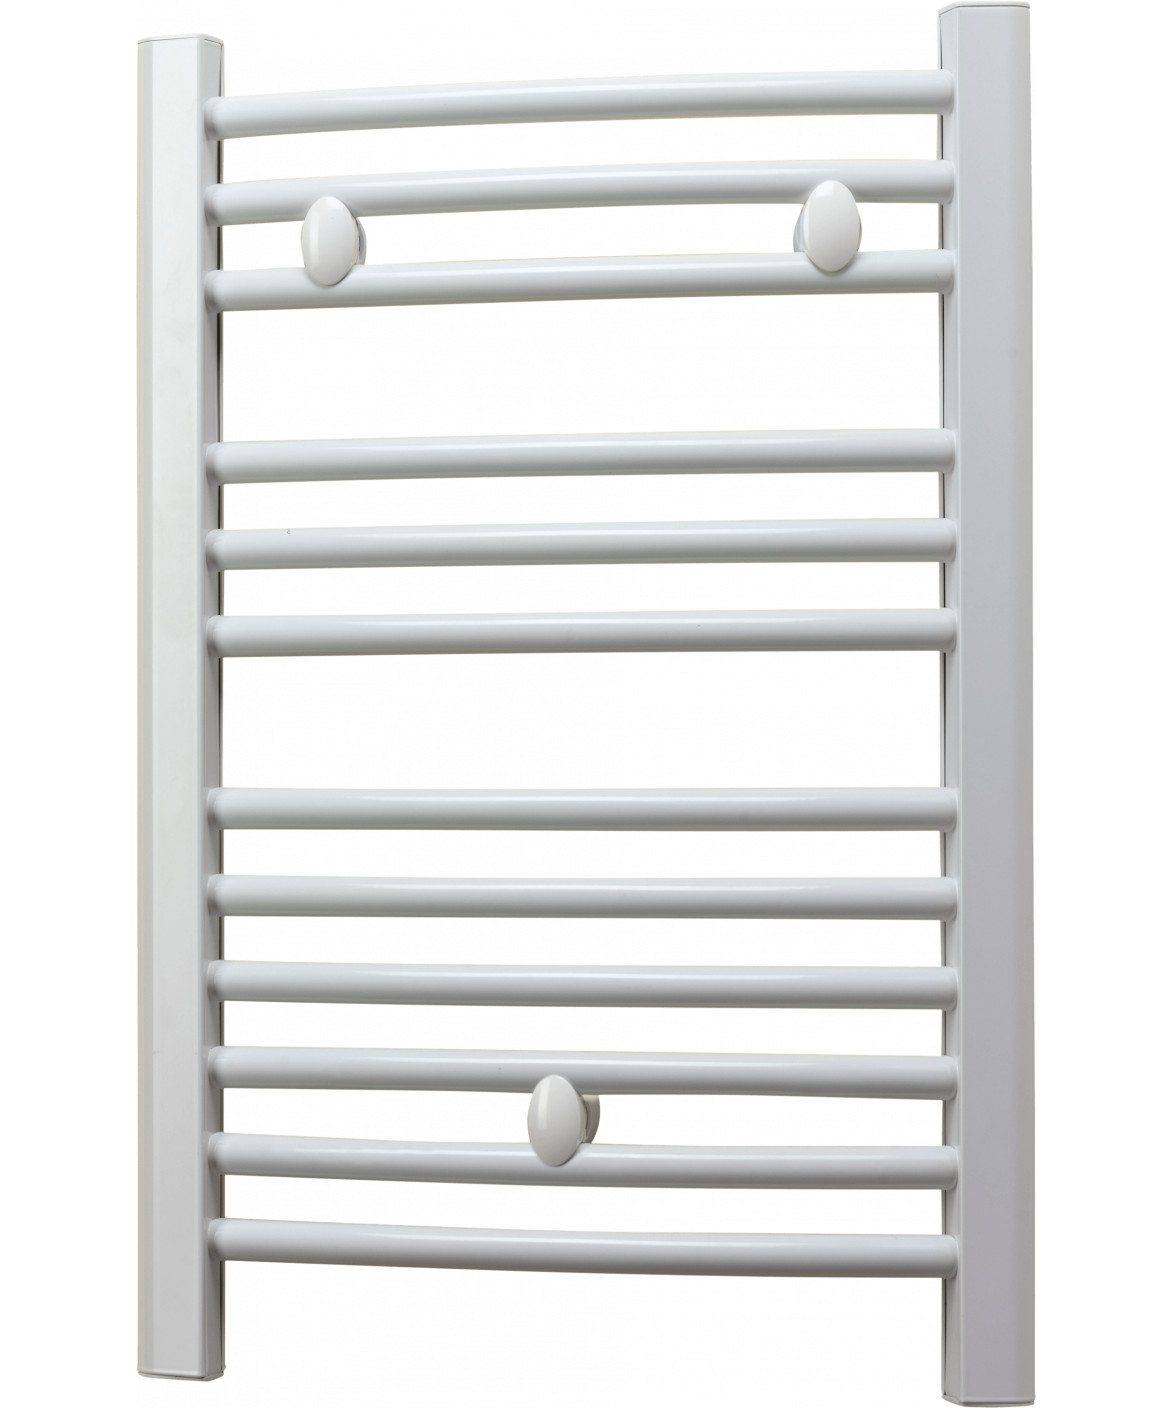 Towel Rails Towel Rail White TDTR175W TDTR175W 1 1